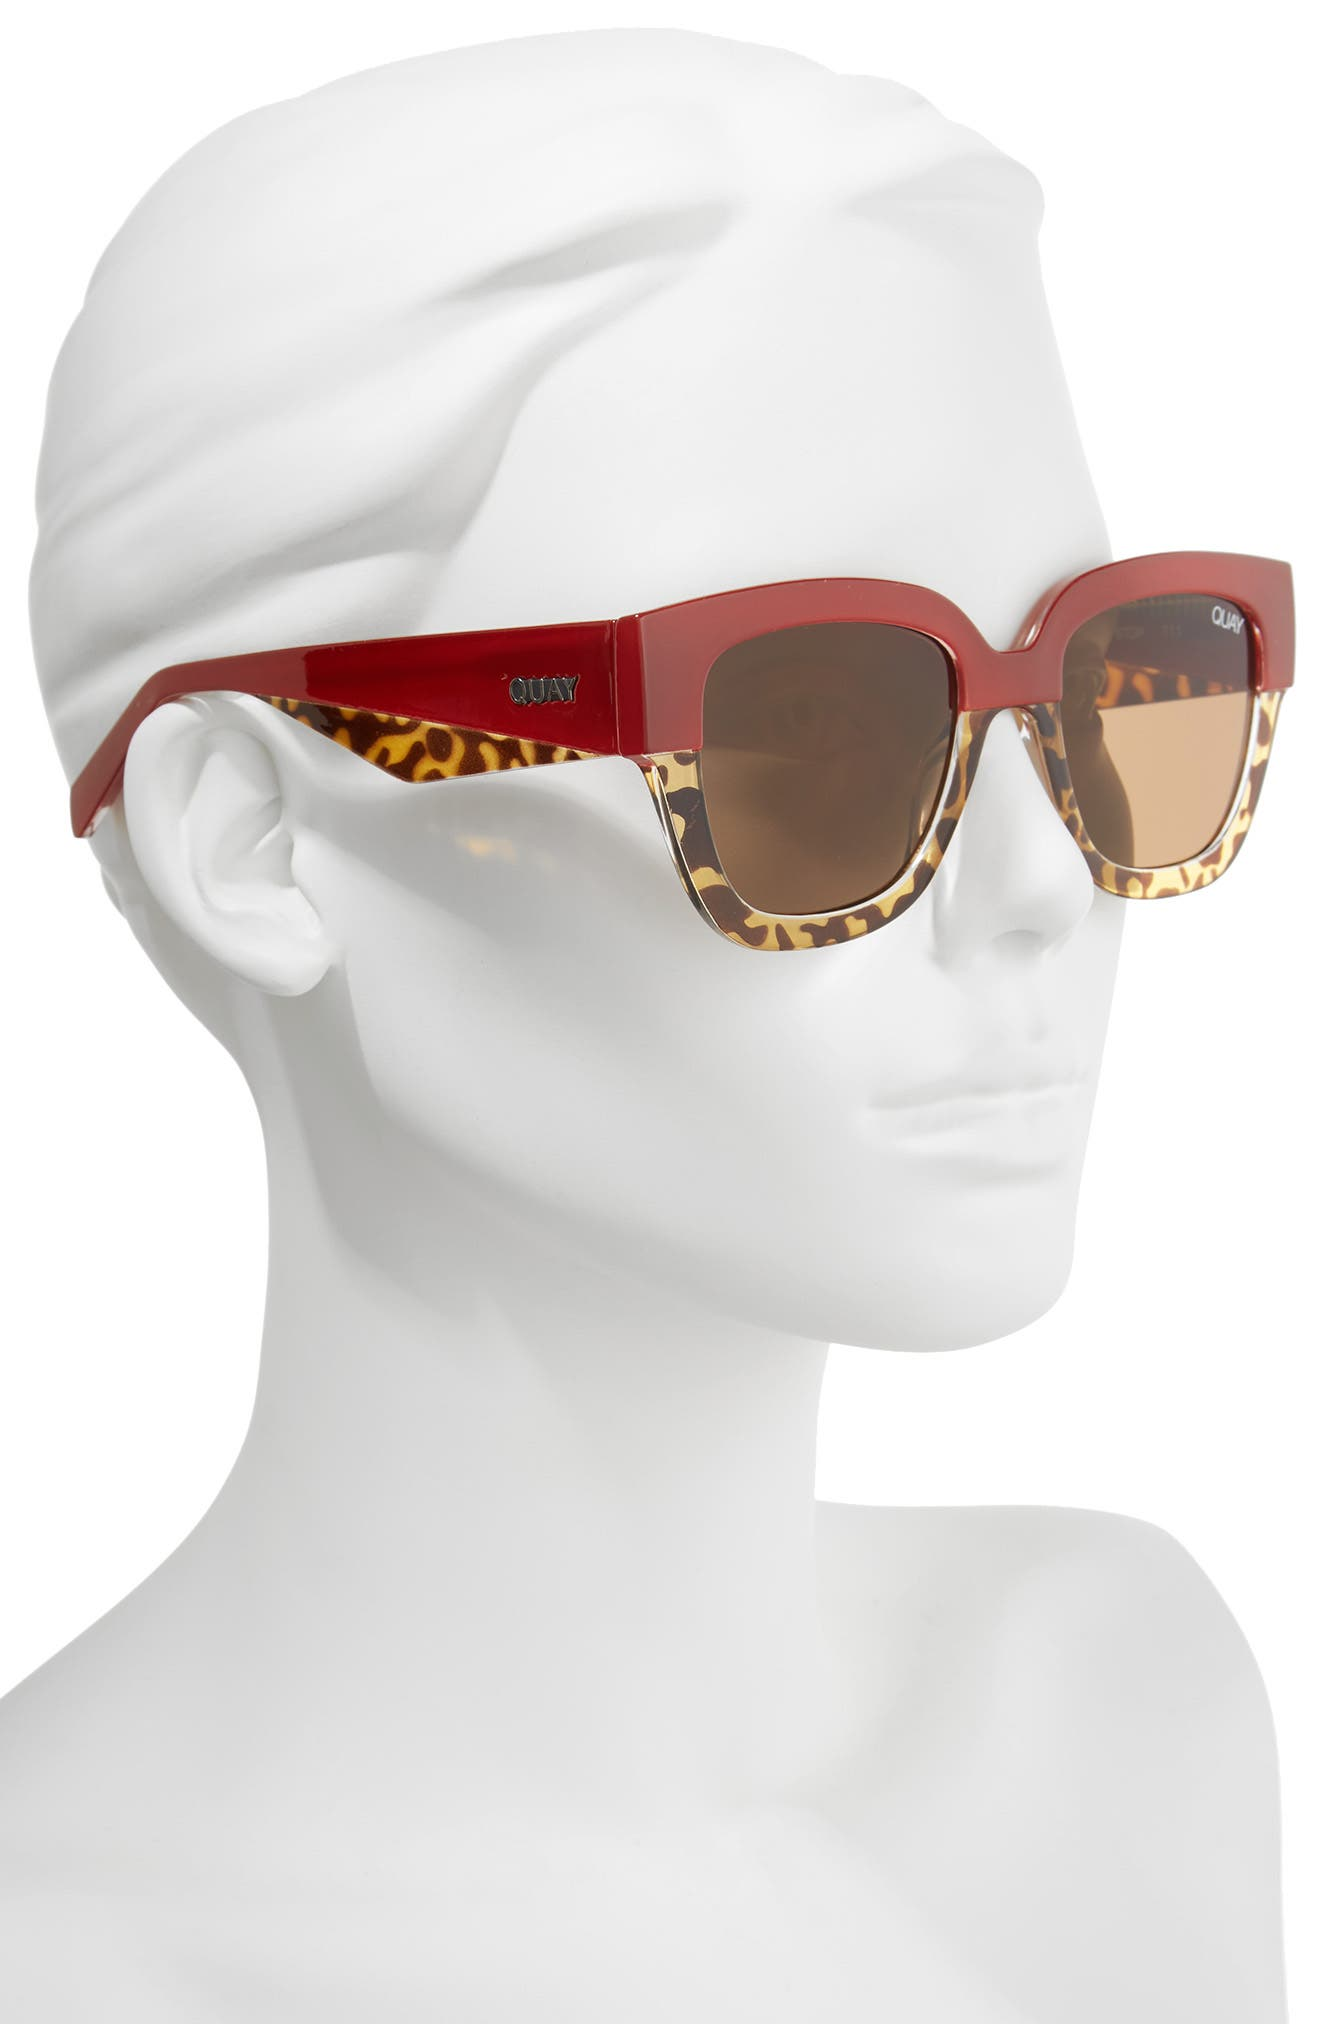 55mm Don't Stop Sunglasses,                             Alternate thumbnail 5, color,                             Red/ Tort/ Brown